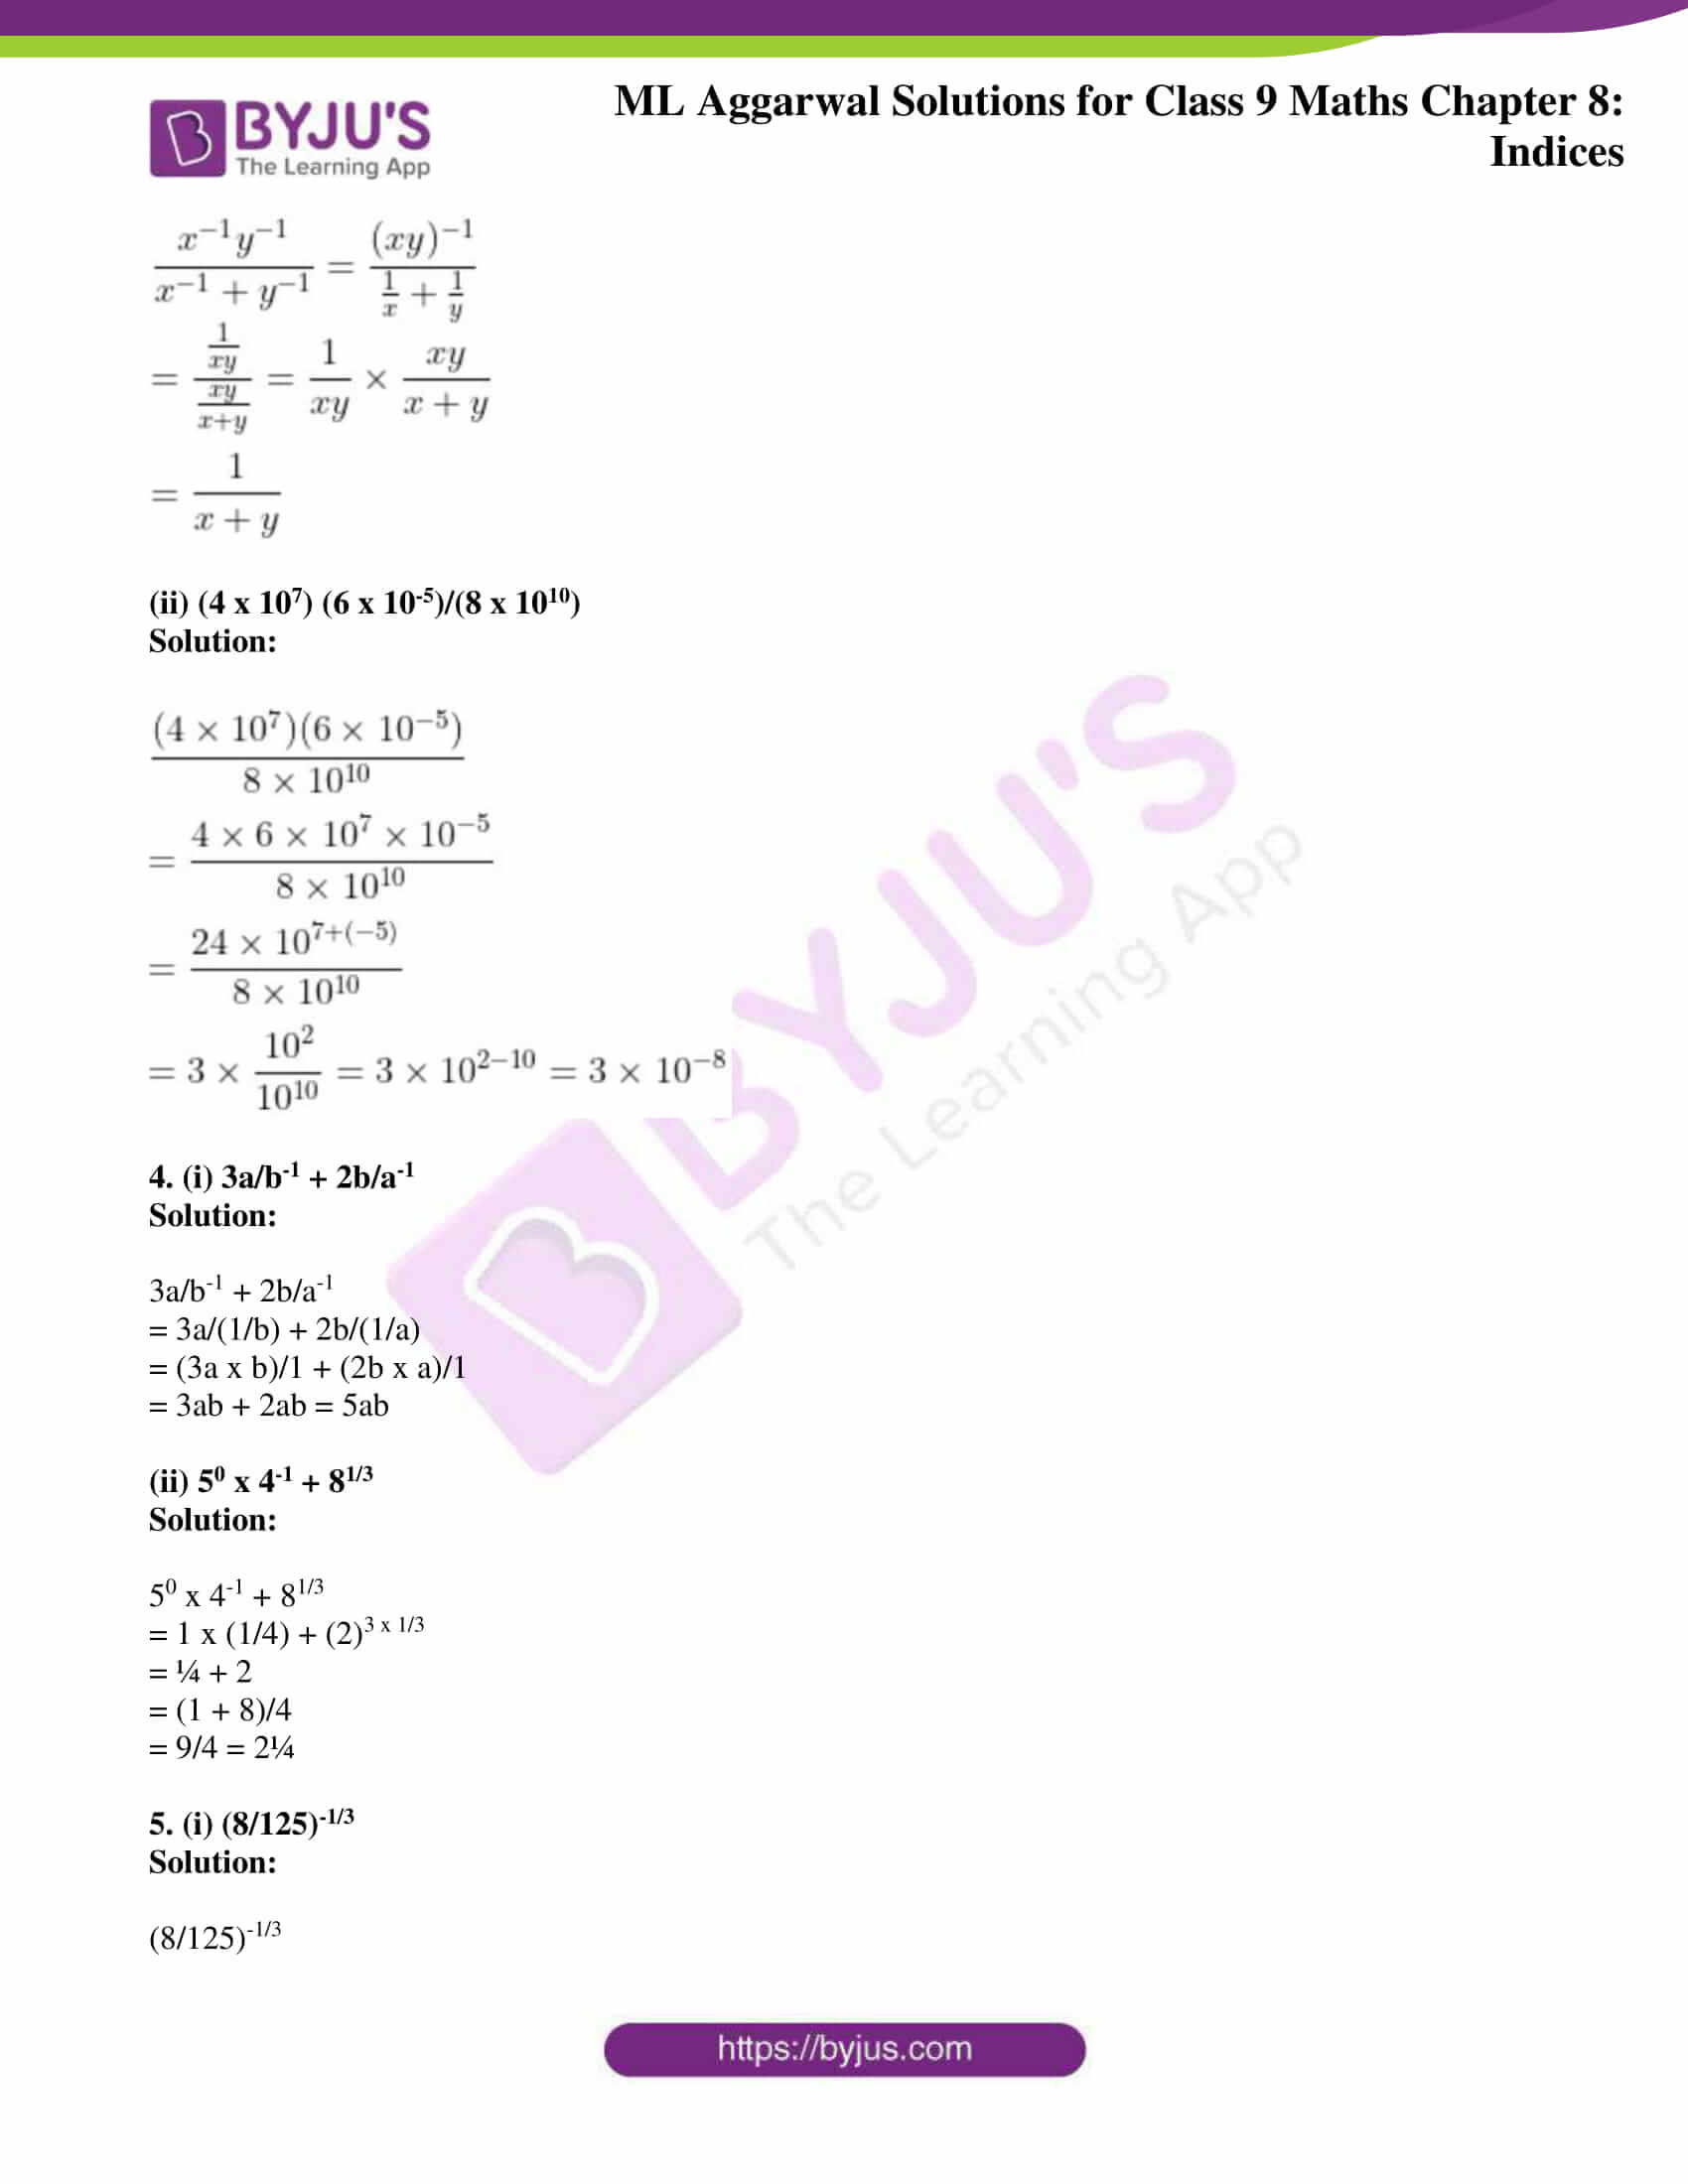 ml aggarwal solutions for class 9 maths chapter 8 02